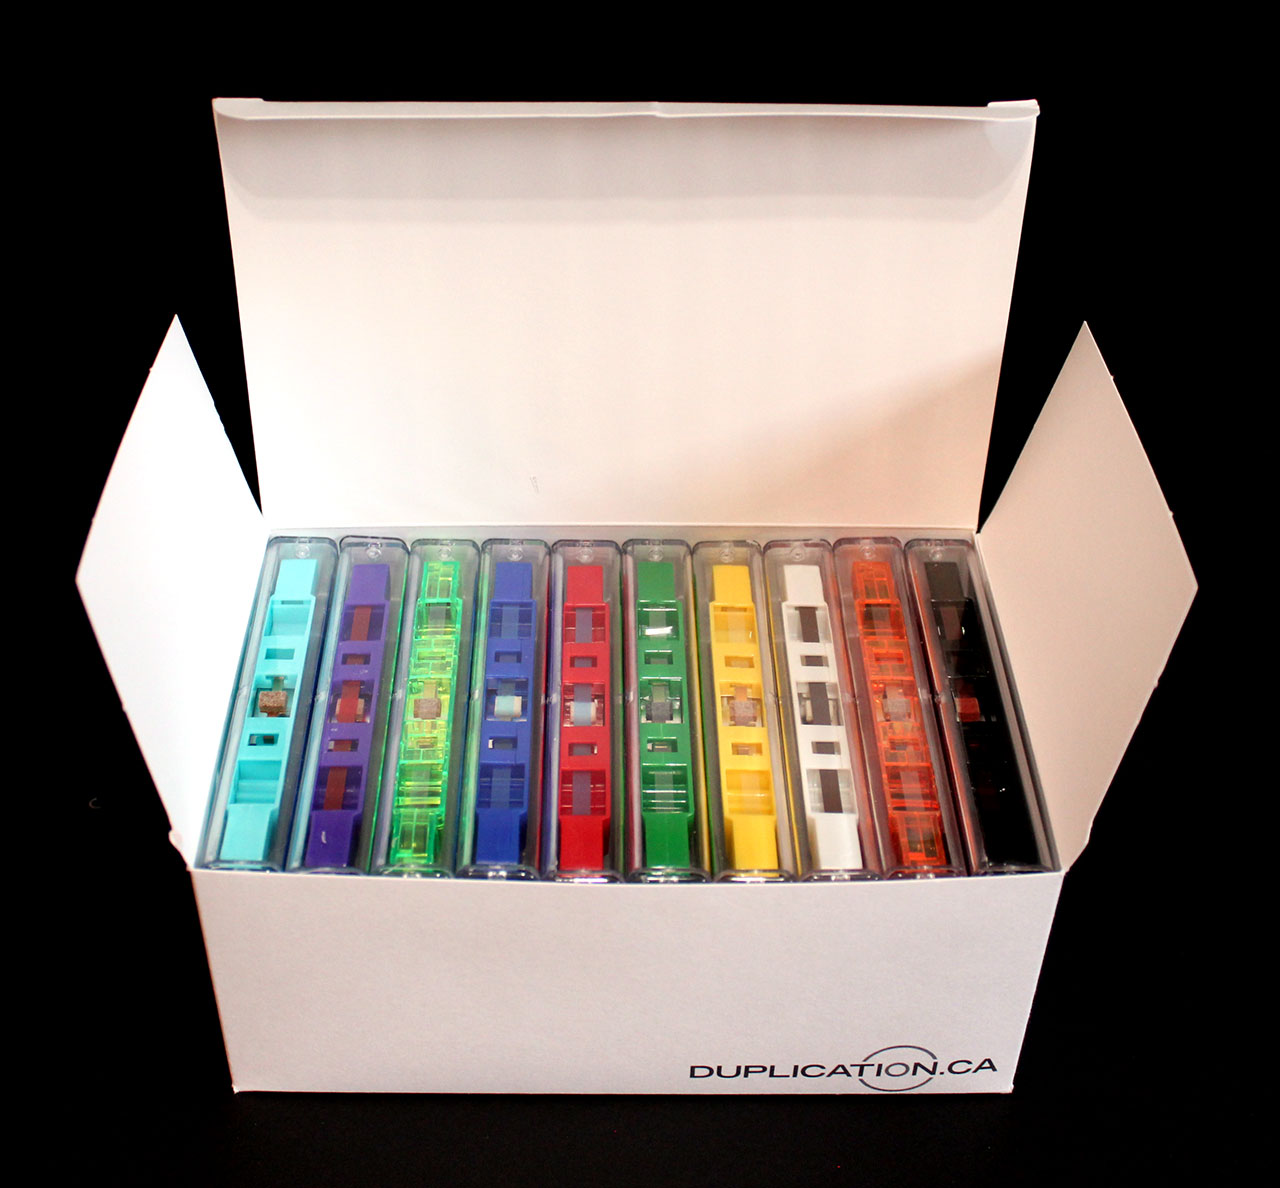 60-minute cassettes with cases and J-cards (10-pack, random colours)